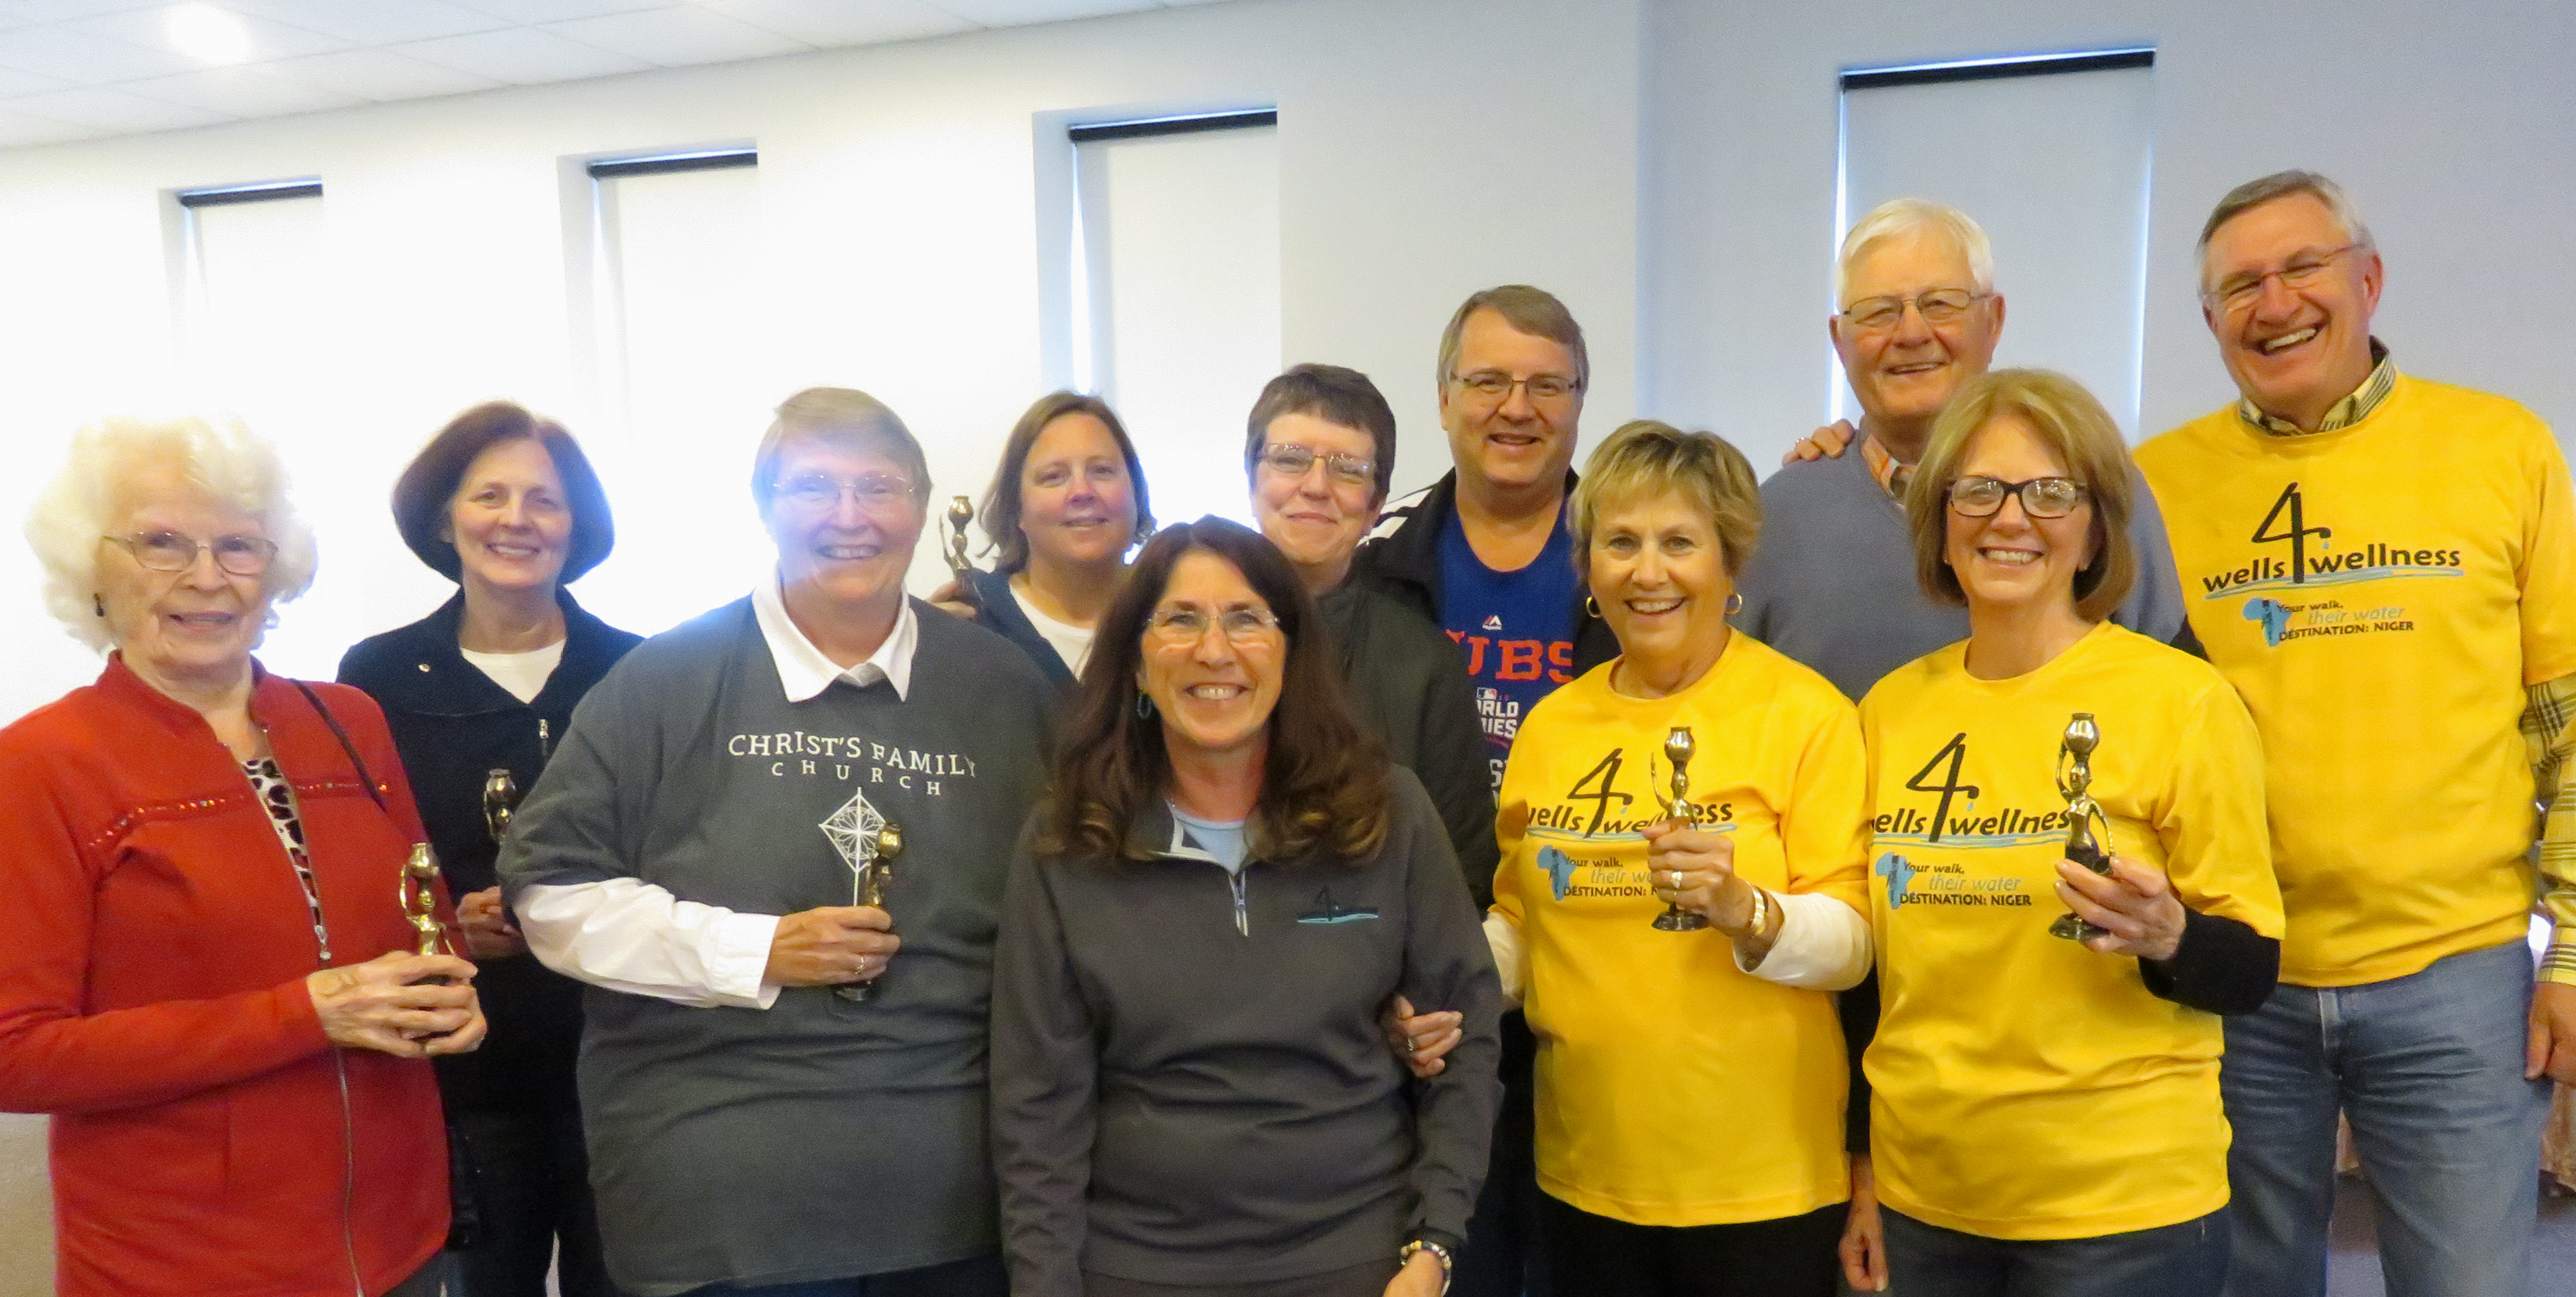 Walkers 4 Life from Faith Family Church raised the most money.